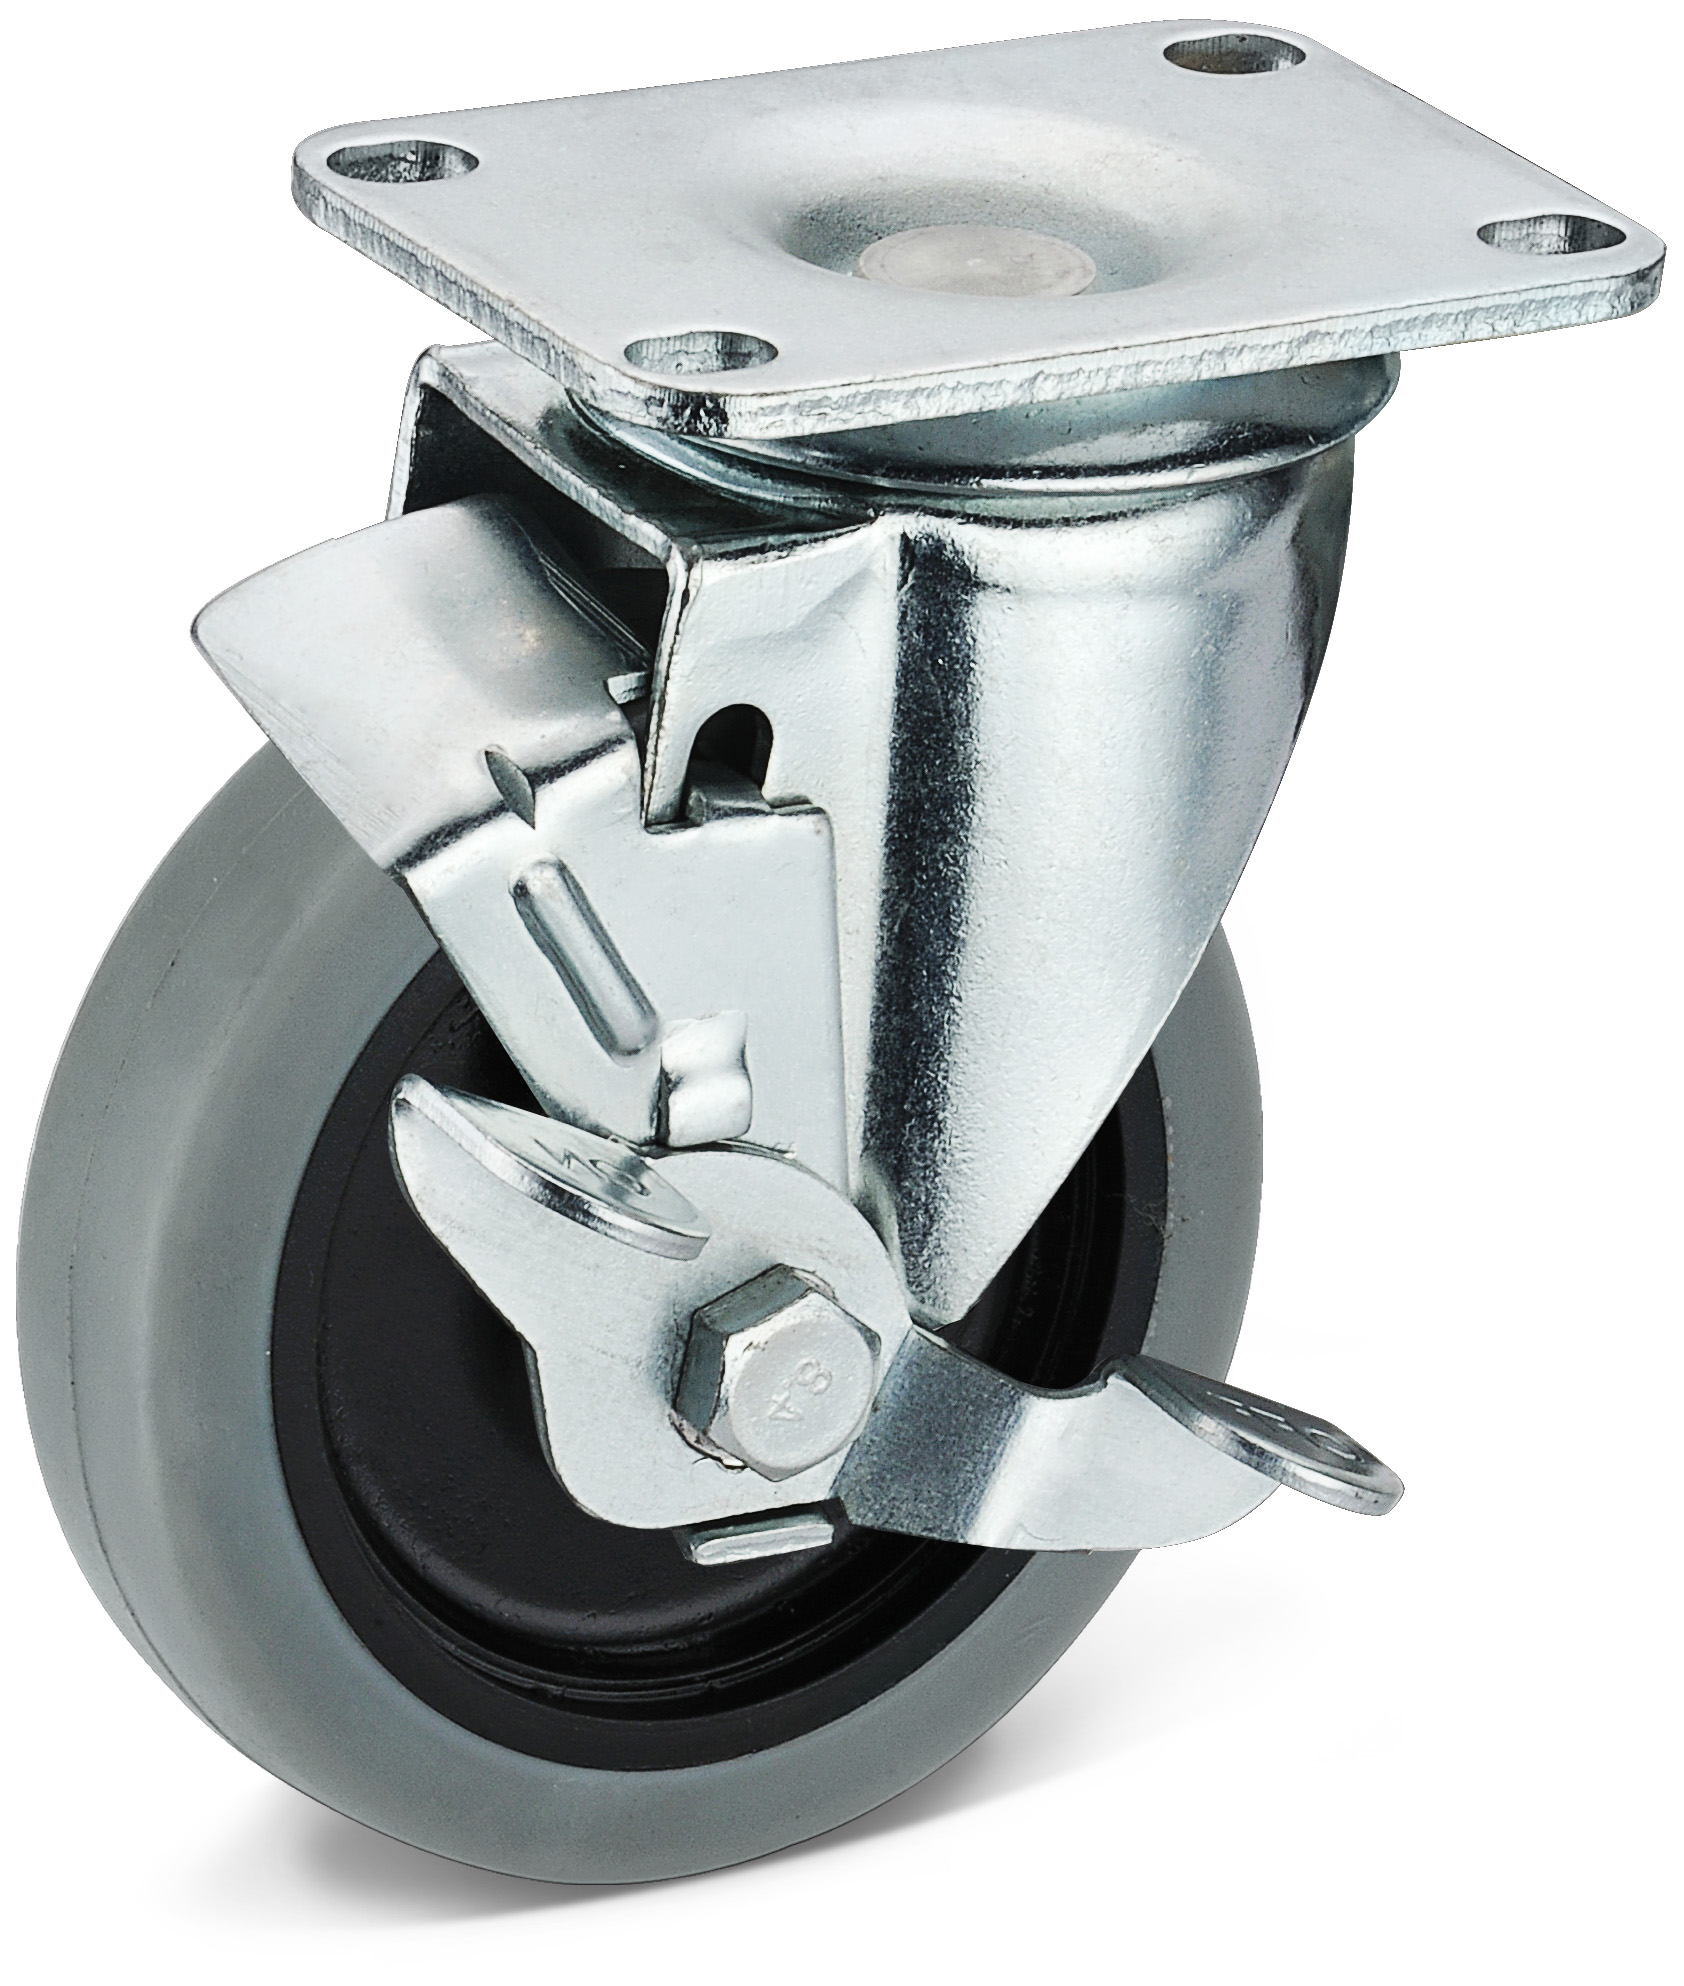 TPR Movable Side Brake Casters